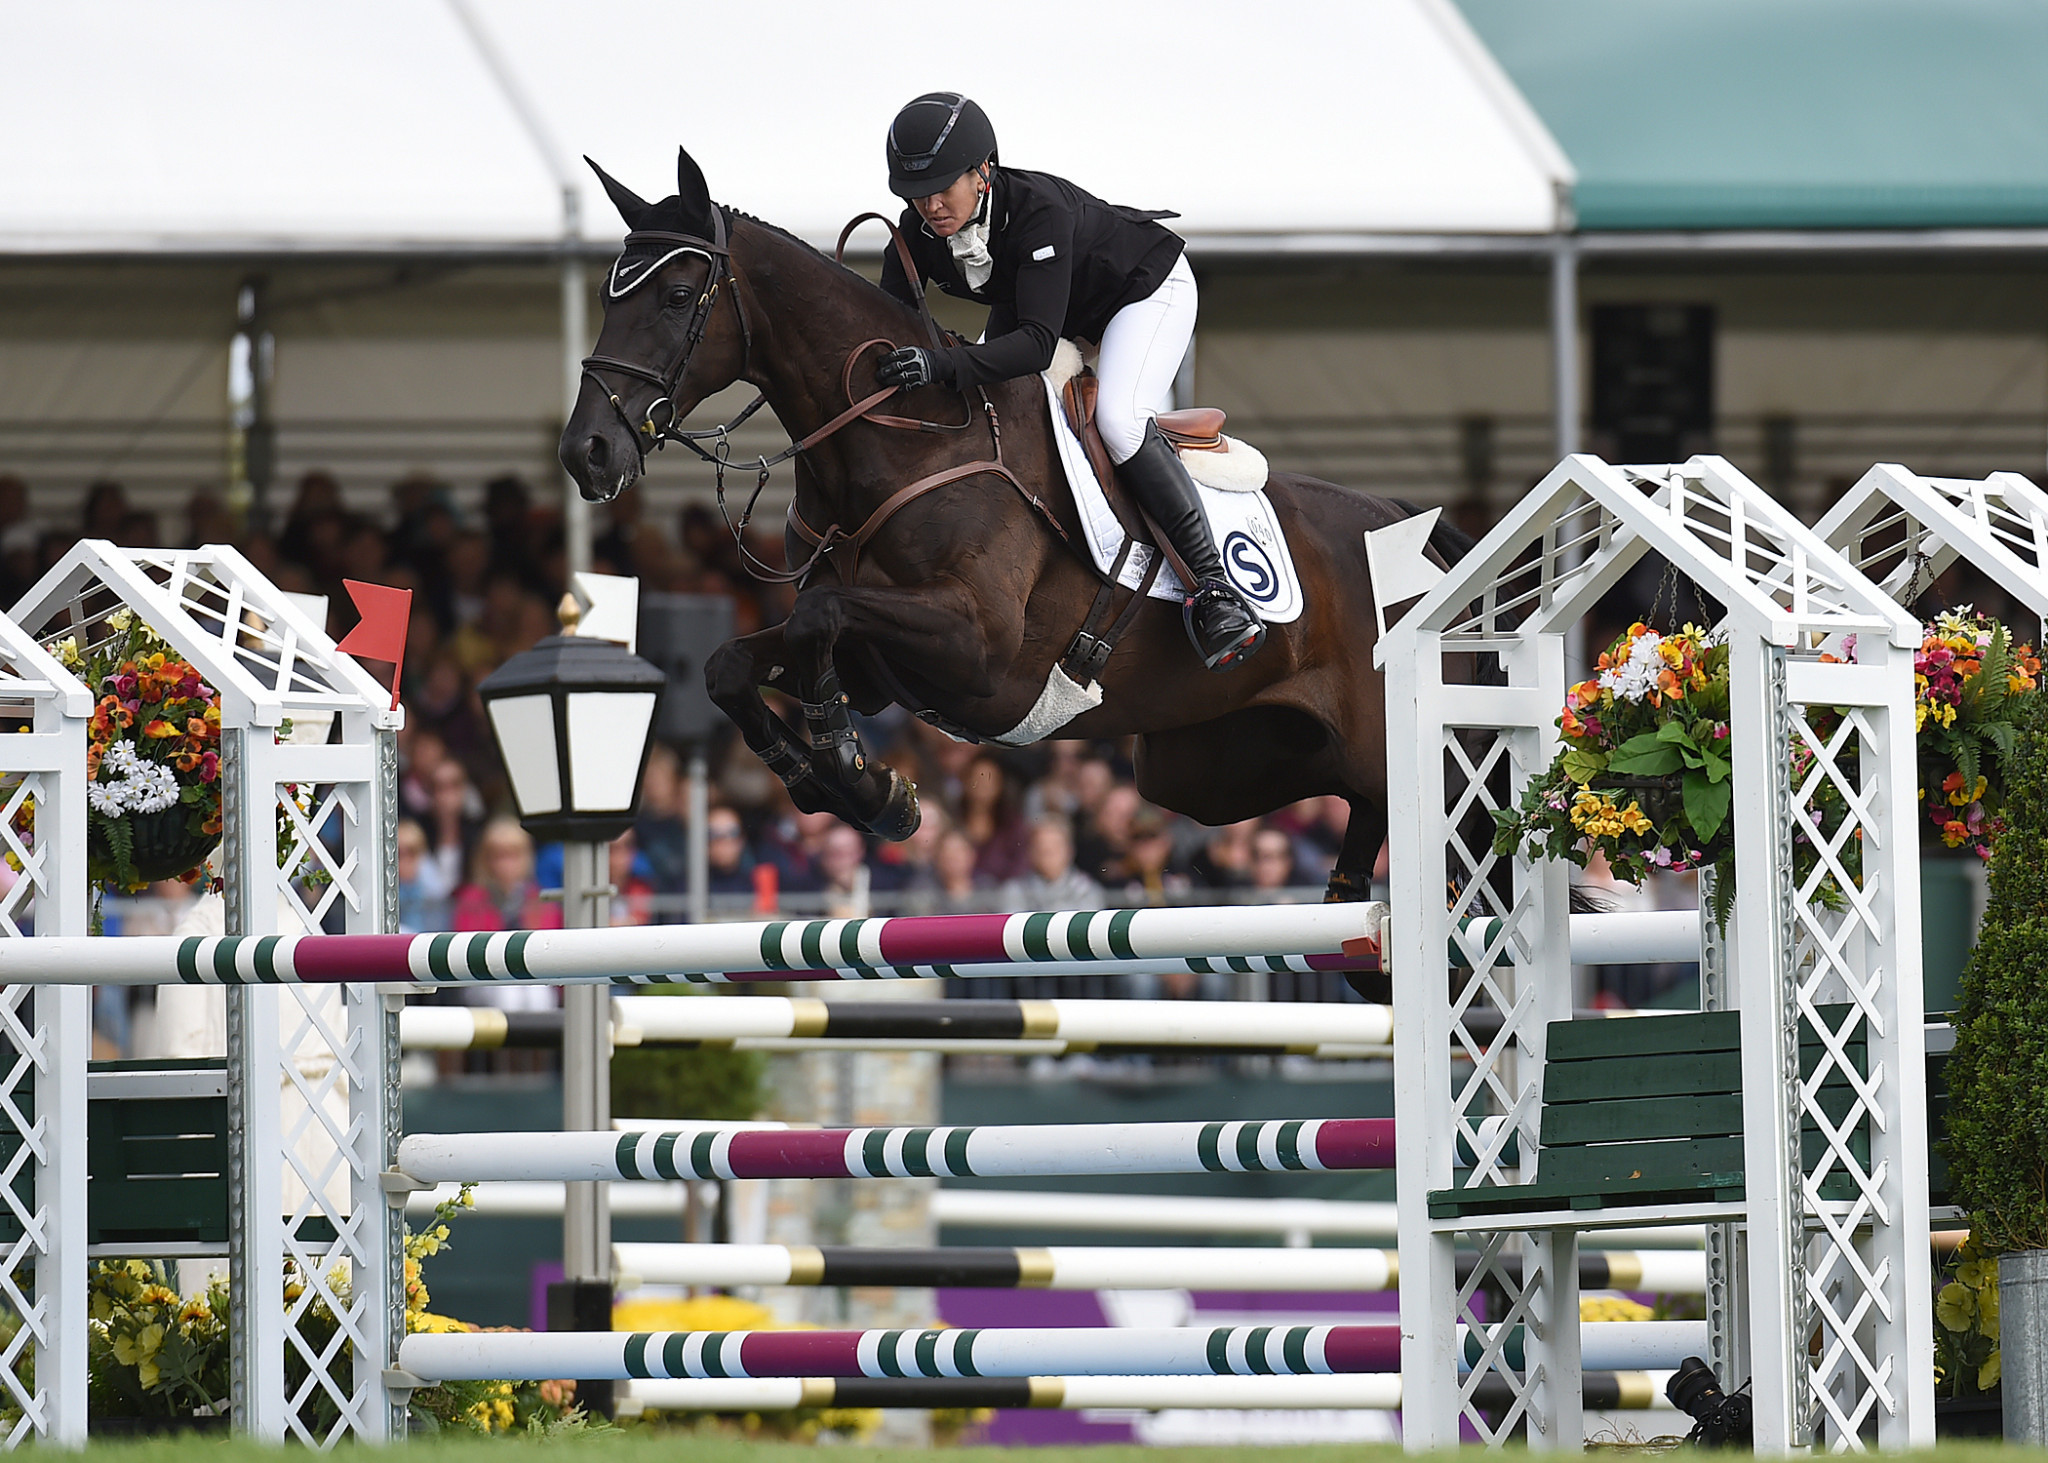 Price rises to lead Badminton Horse Trials after cross-country phase